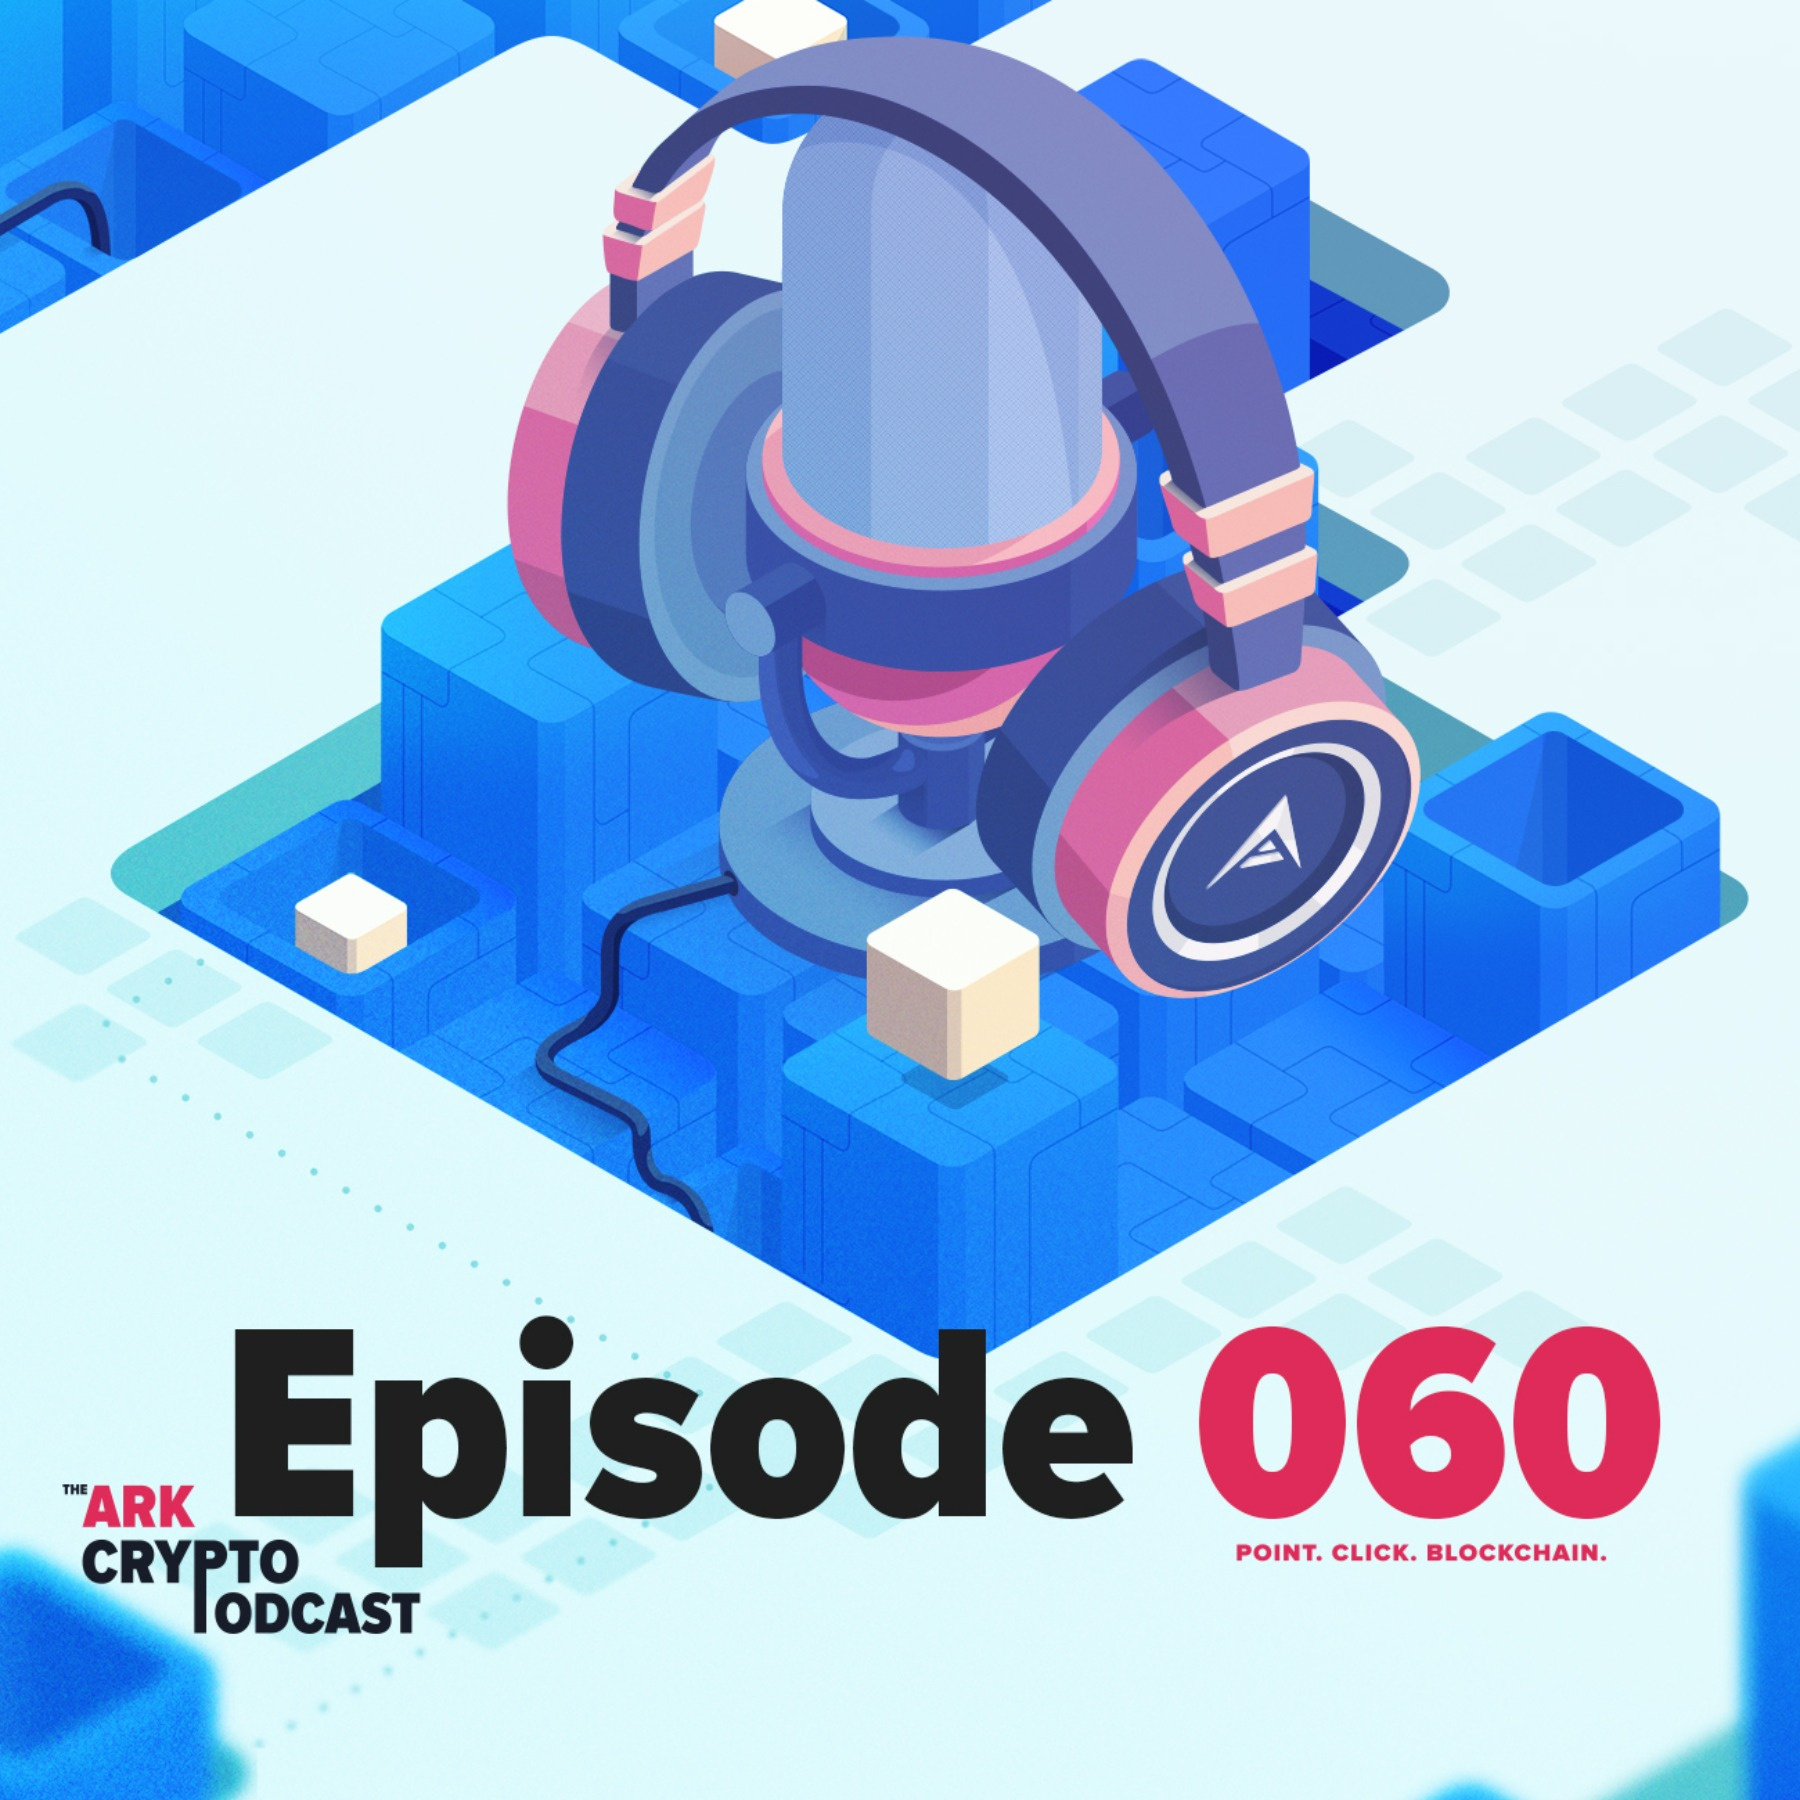 ARK Crypto Podcast #060 - New Contest Details and Procedure, CoinKit Integration, and Meetup Recording